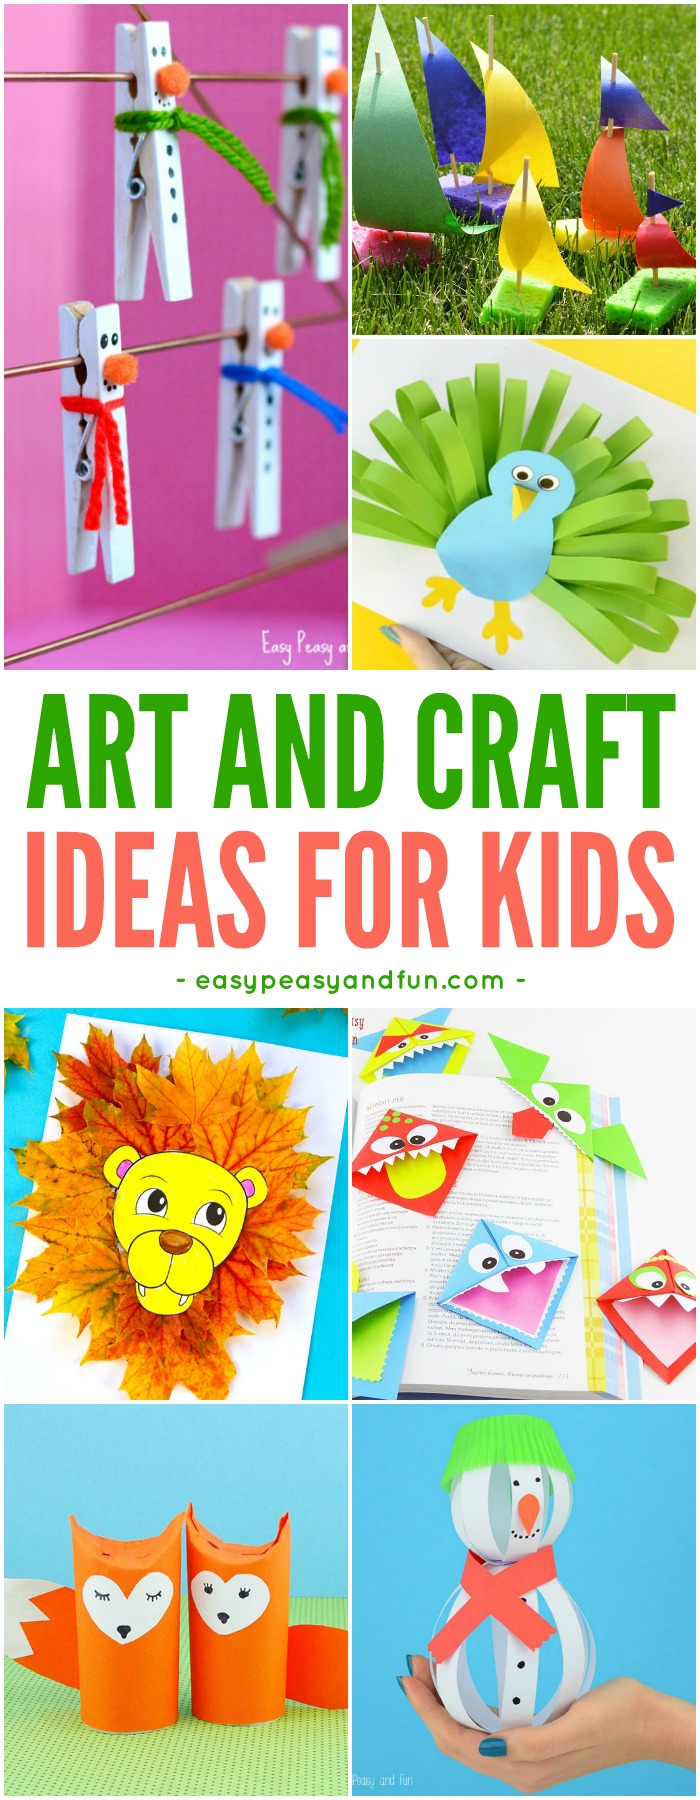 10 Great Easy Arts And Craft Ideas crafts for kids tons of art and craft ideas for kids to make 2